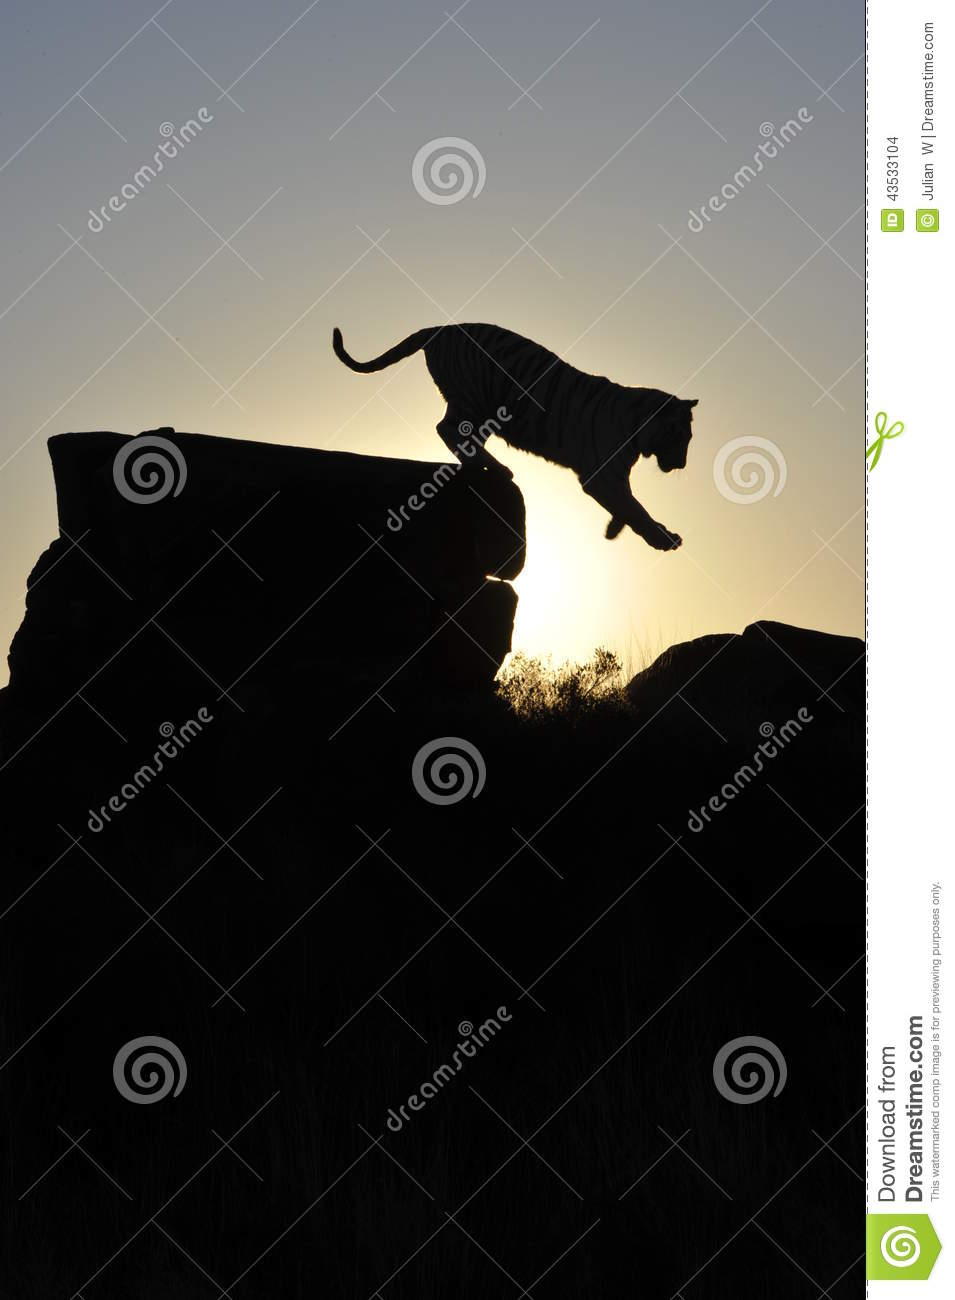 Silhouette shot of a tiger